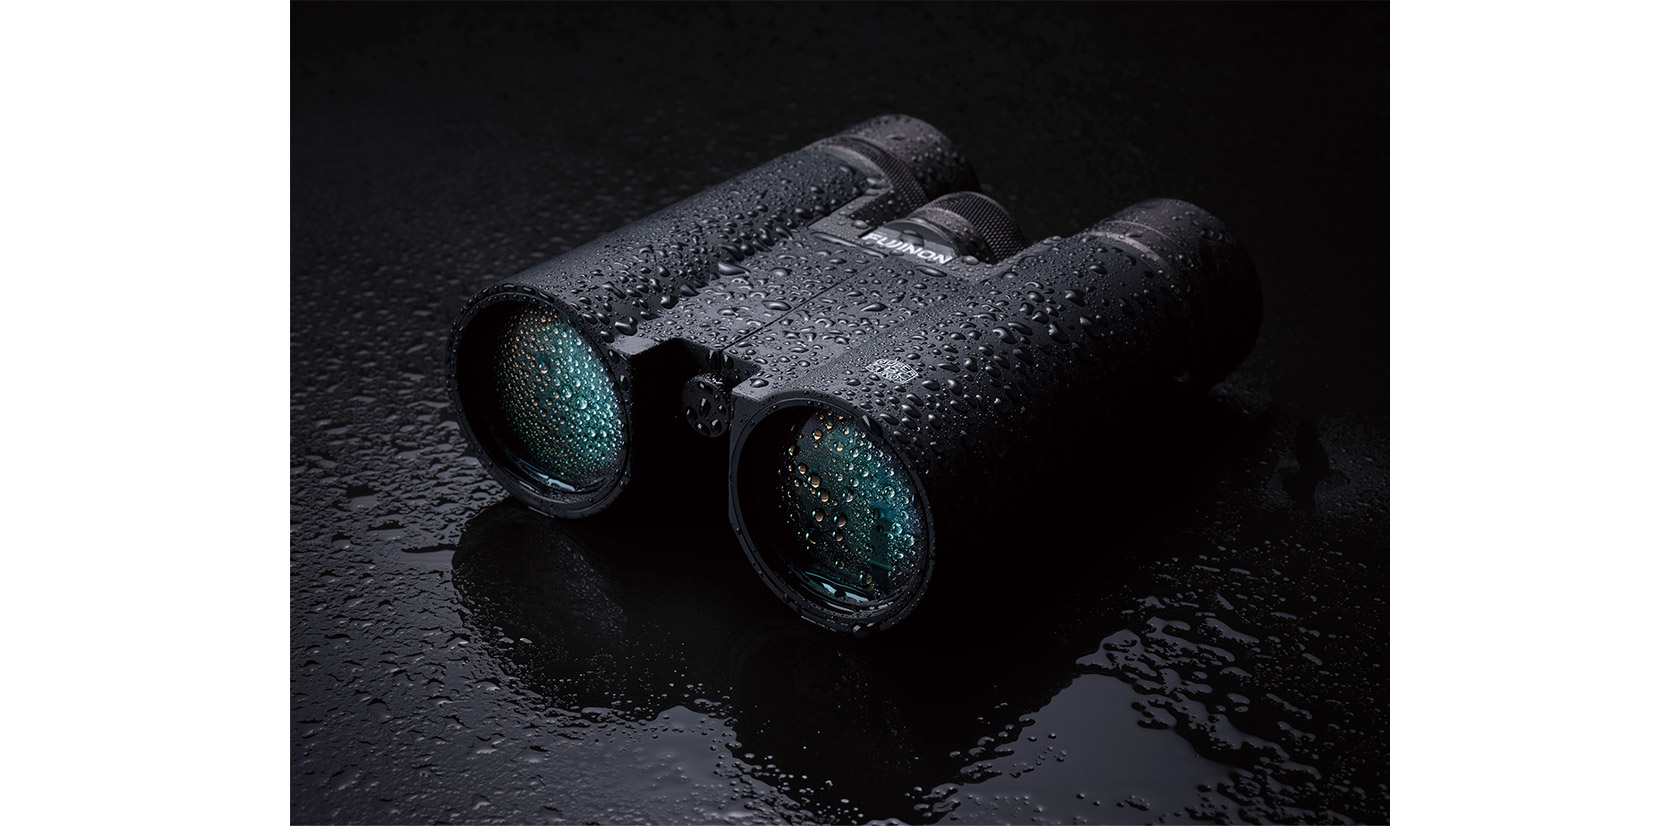 Black Hyper-Clarity Series binoculars splashed with water droplets